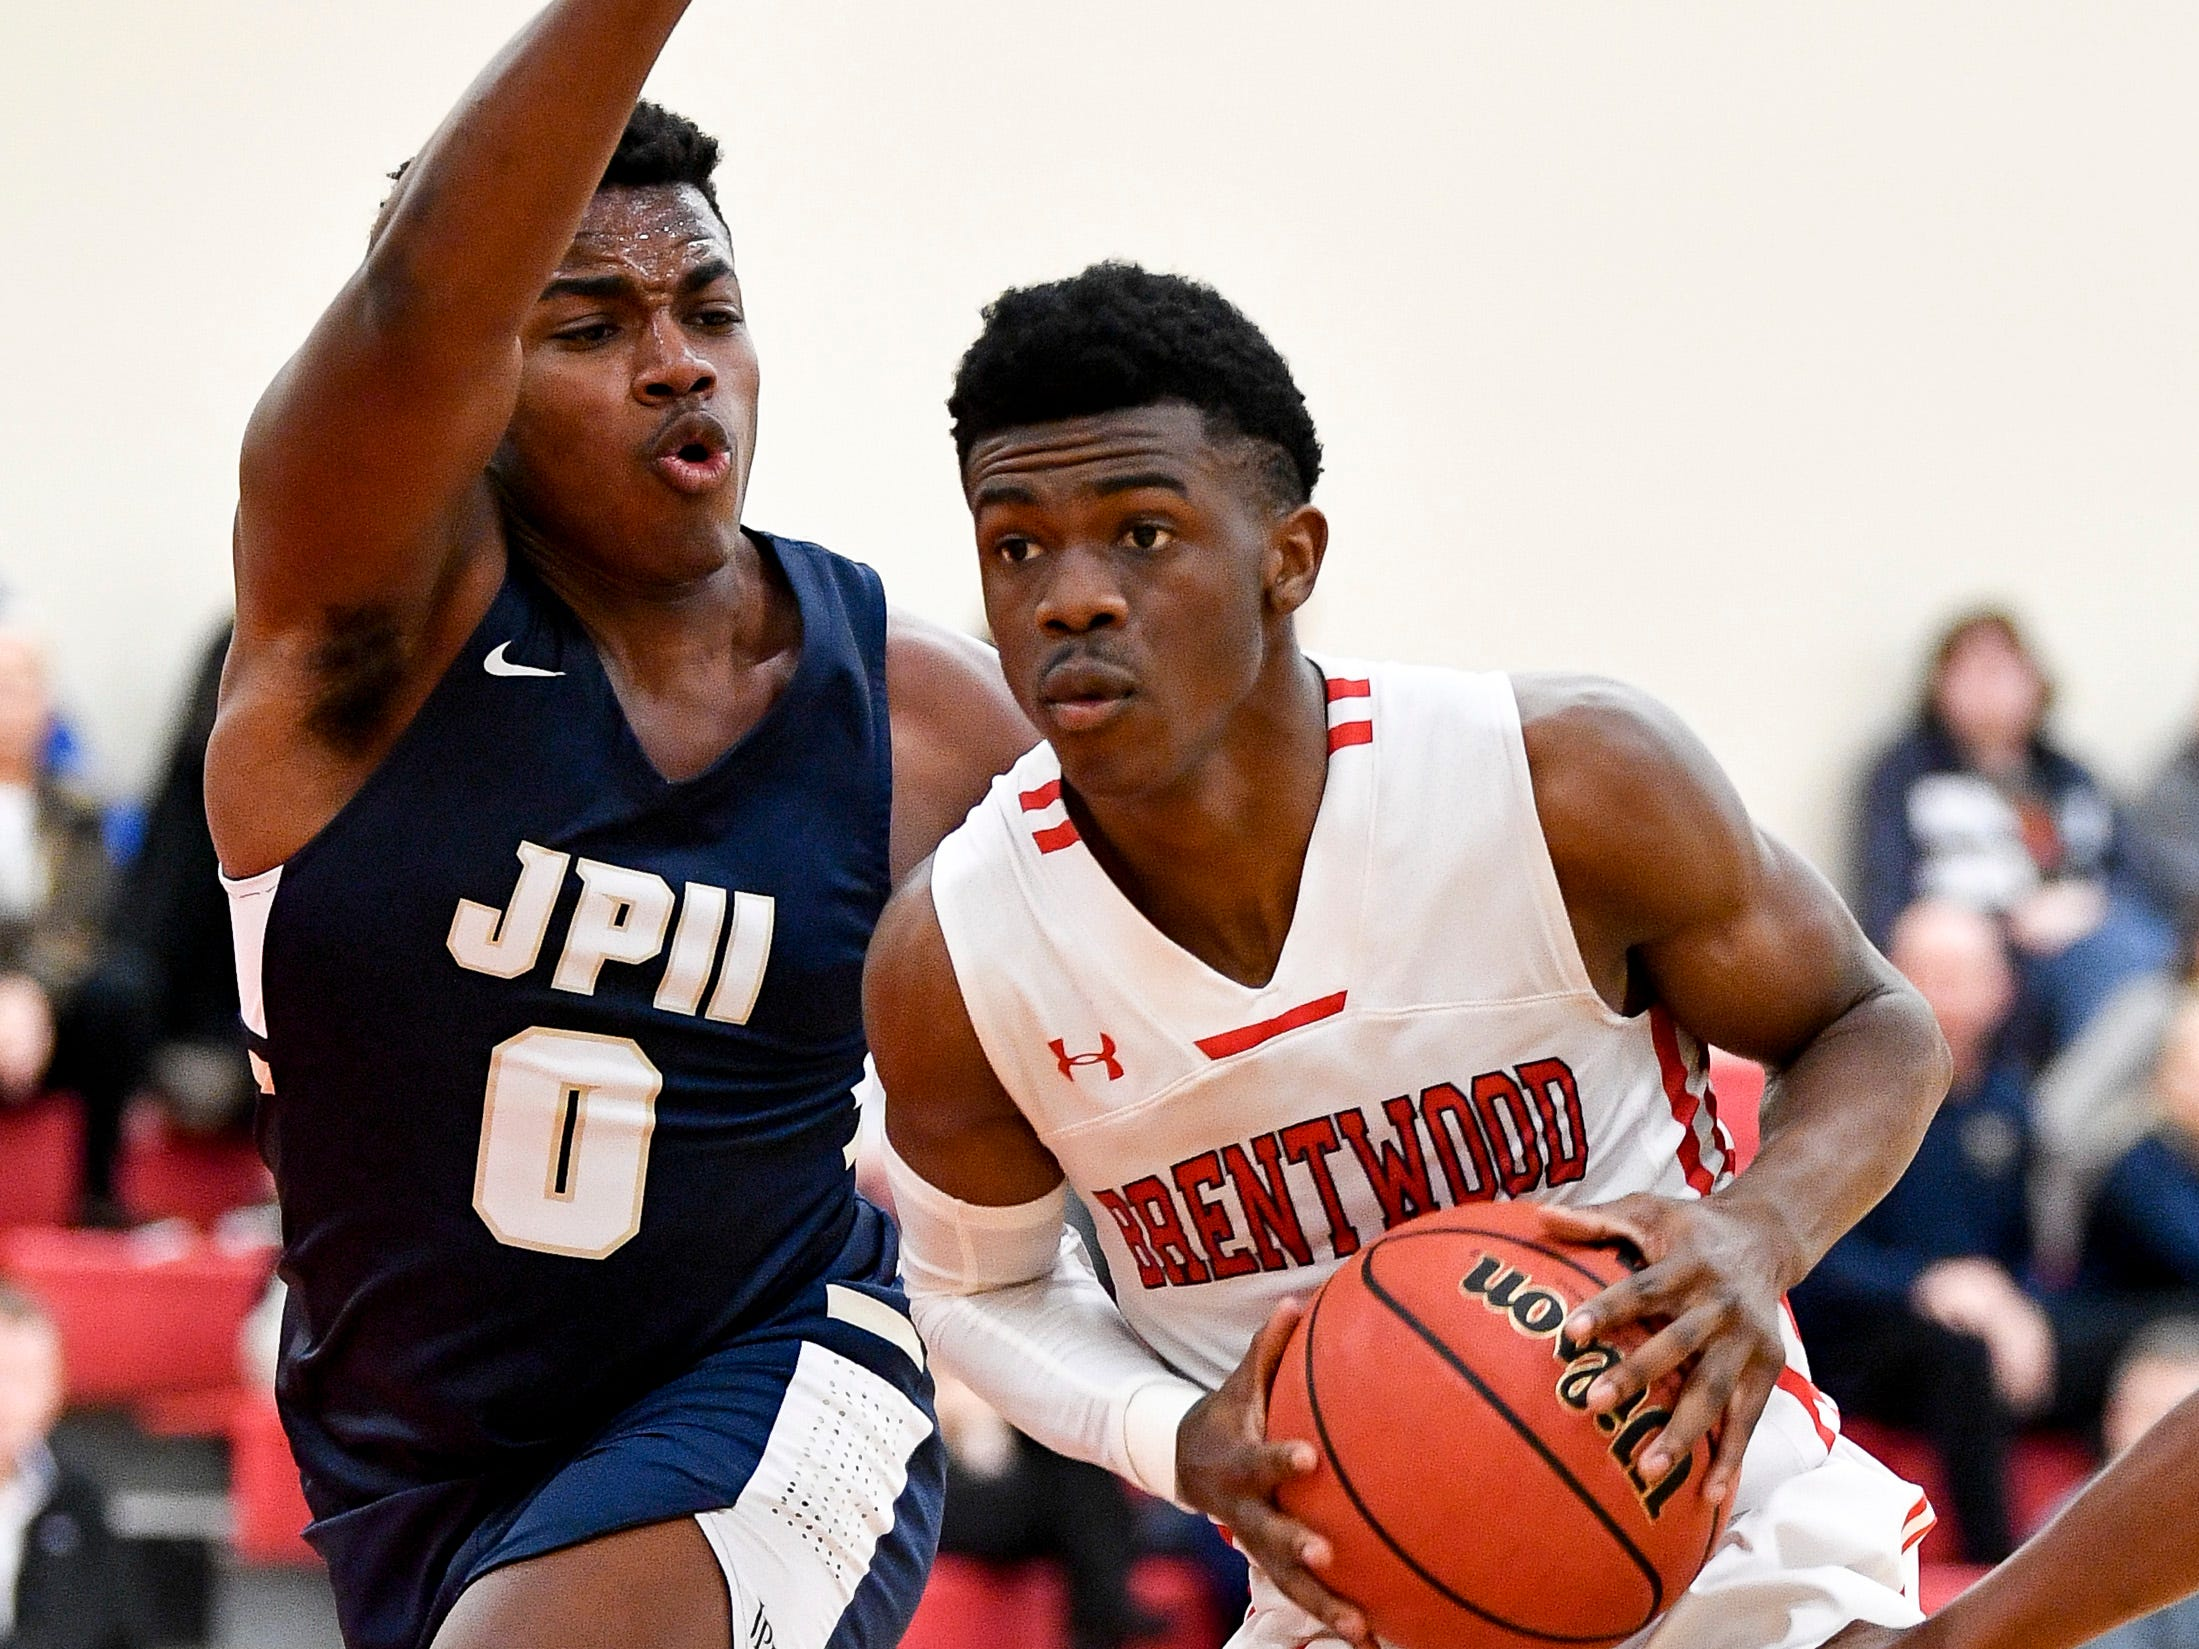 Brentwood Academy's Marcus Fitzgerald jr. (5) battles Pope John Paul II's Jay Wright (0) during the second half at Brentwood Academy in Brentwood, Tenn., Friday, Jan. 4, 2019.